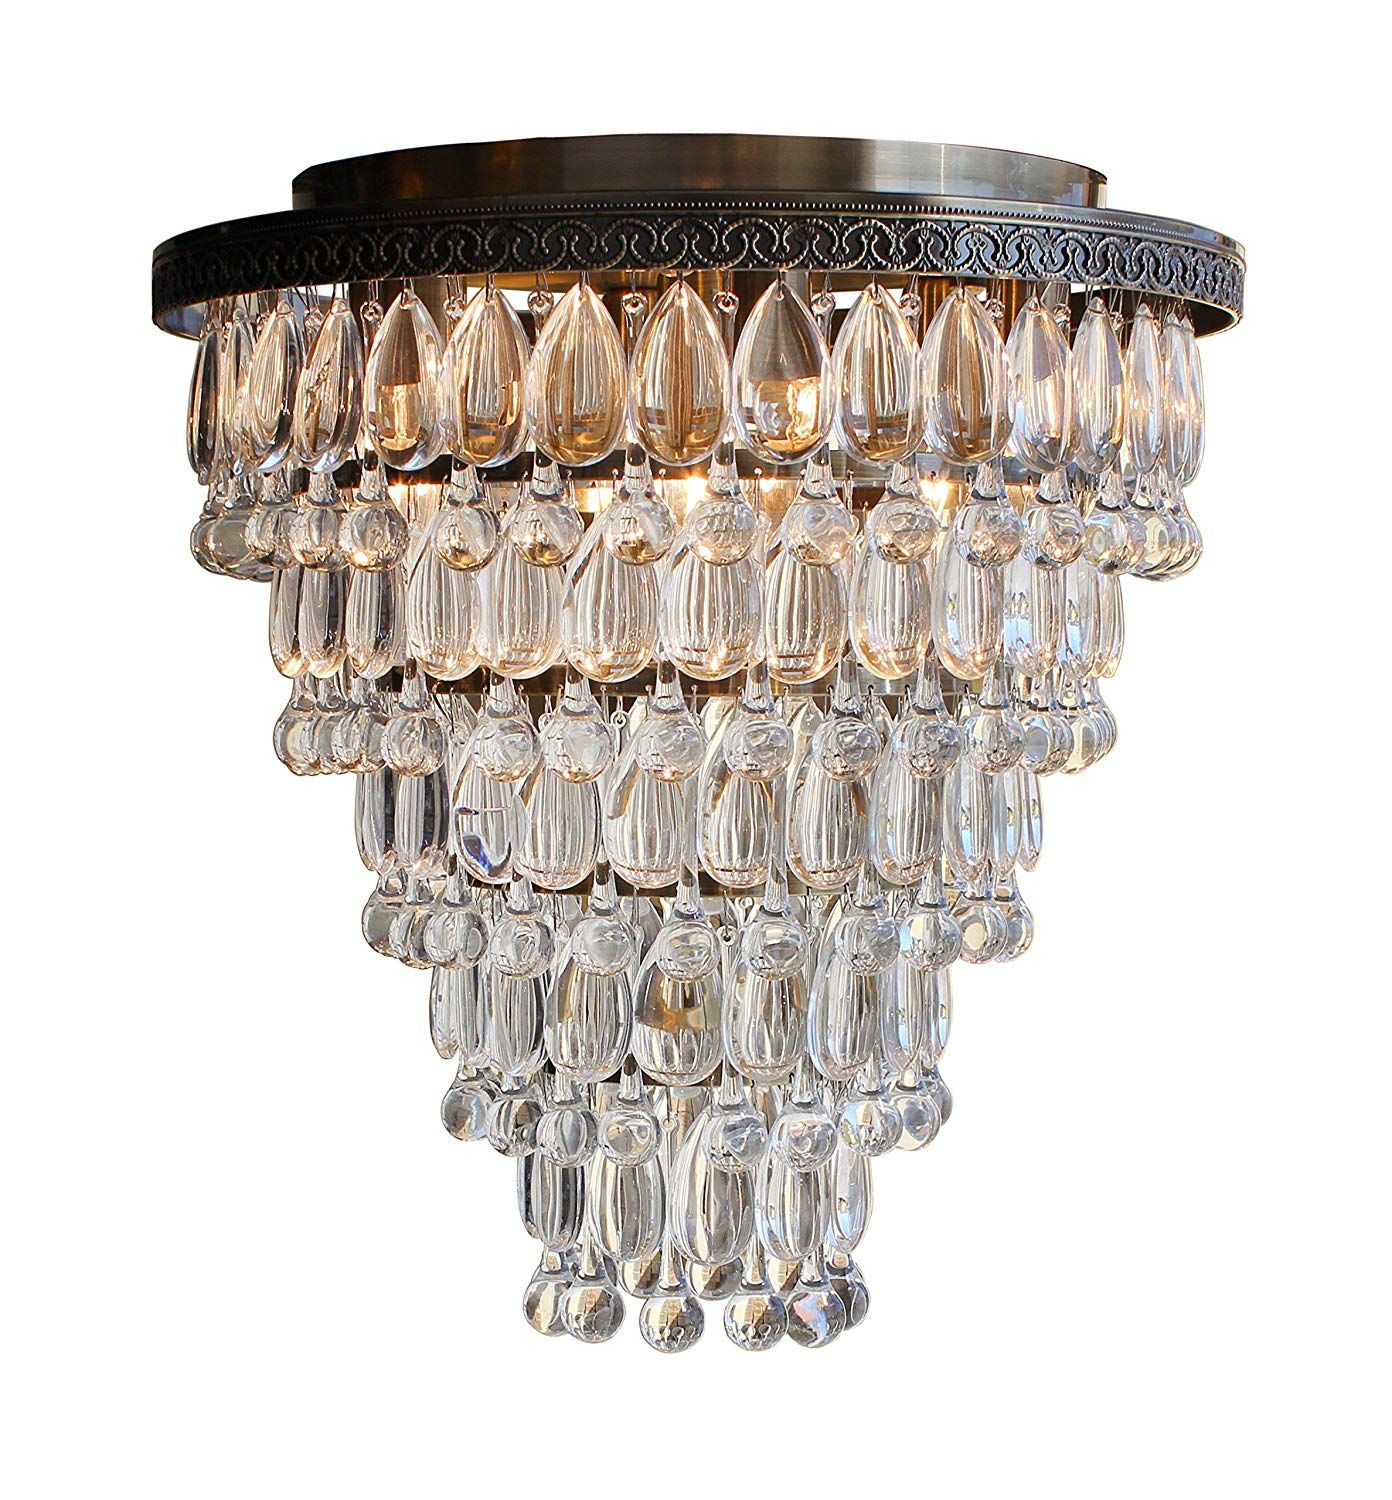 The Weston Extra Large Antique Brass Flush Mount Crystal Drop